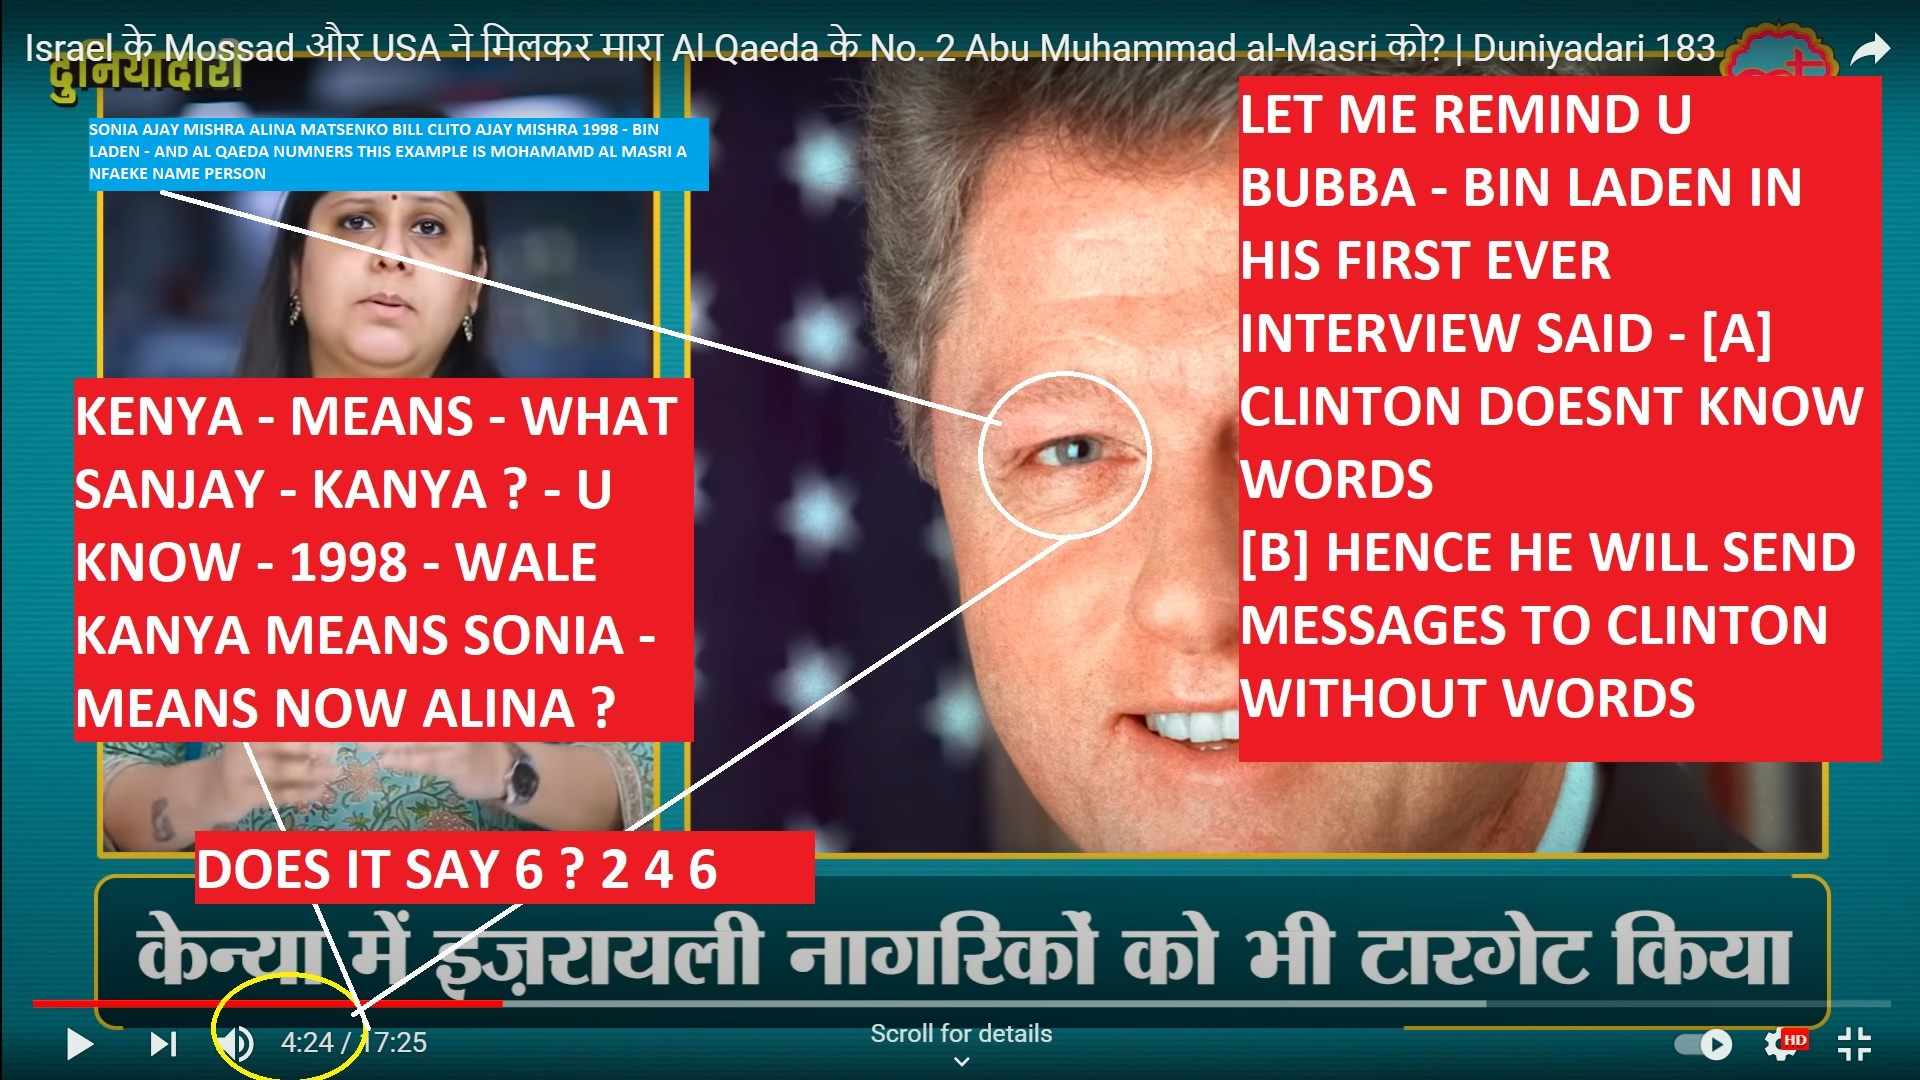 SONIA AJAY MISHRA ALINA MATSENKO BILL CLITO AJAY MISHRA 1998 - BIN LADEN - AND AL QAEDA NUMNERS THIS EXAMPLE IS MOHAMAMD AL MASRI A NFAEKE NAME PERSON